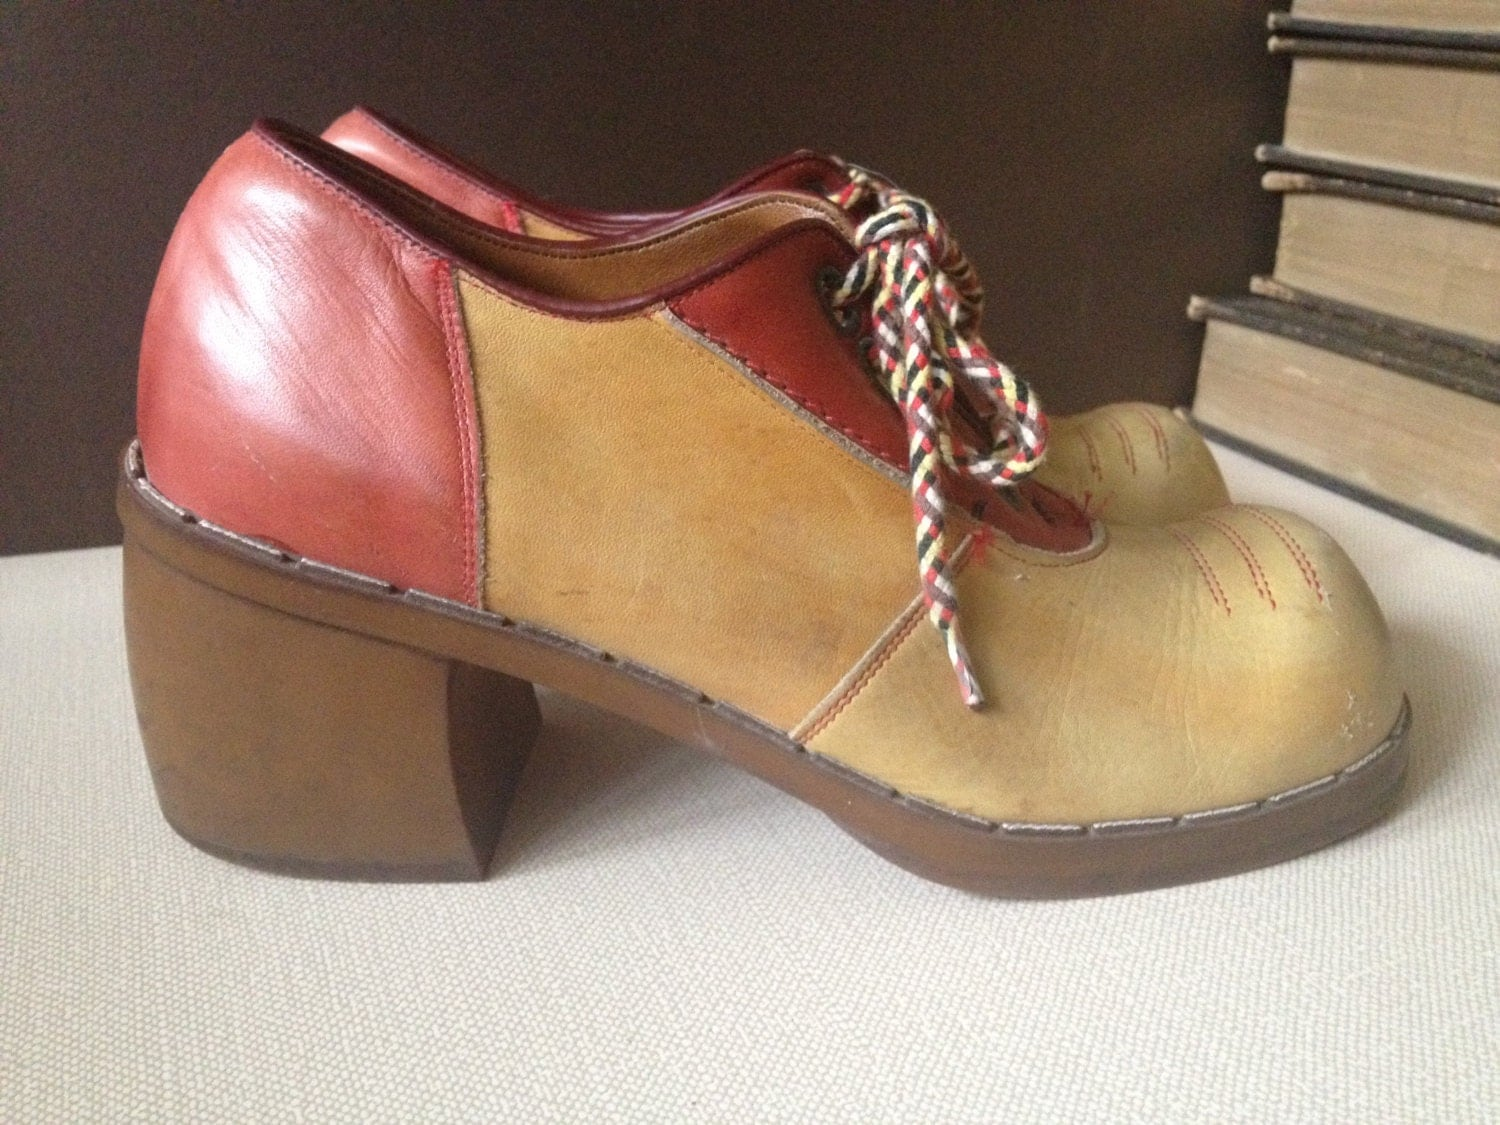 70s oxford saddle shoes two tone leather size 4 5 5 us